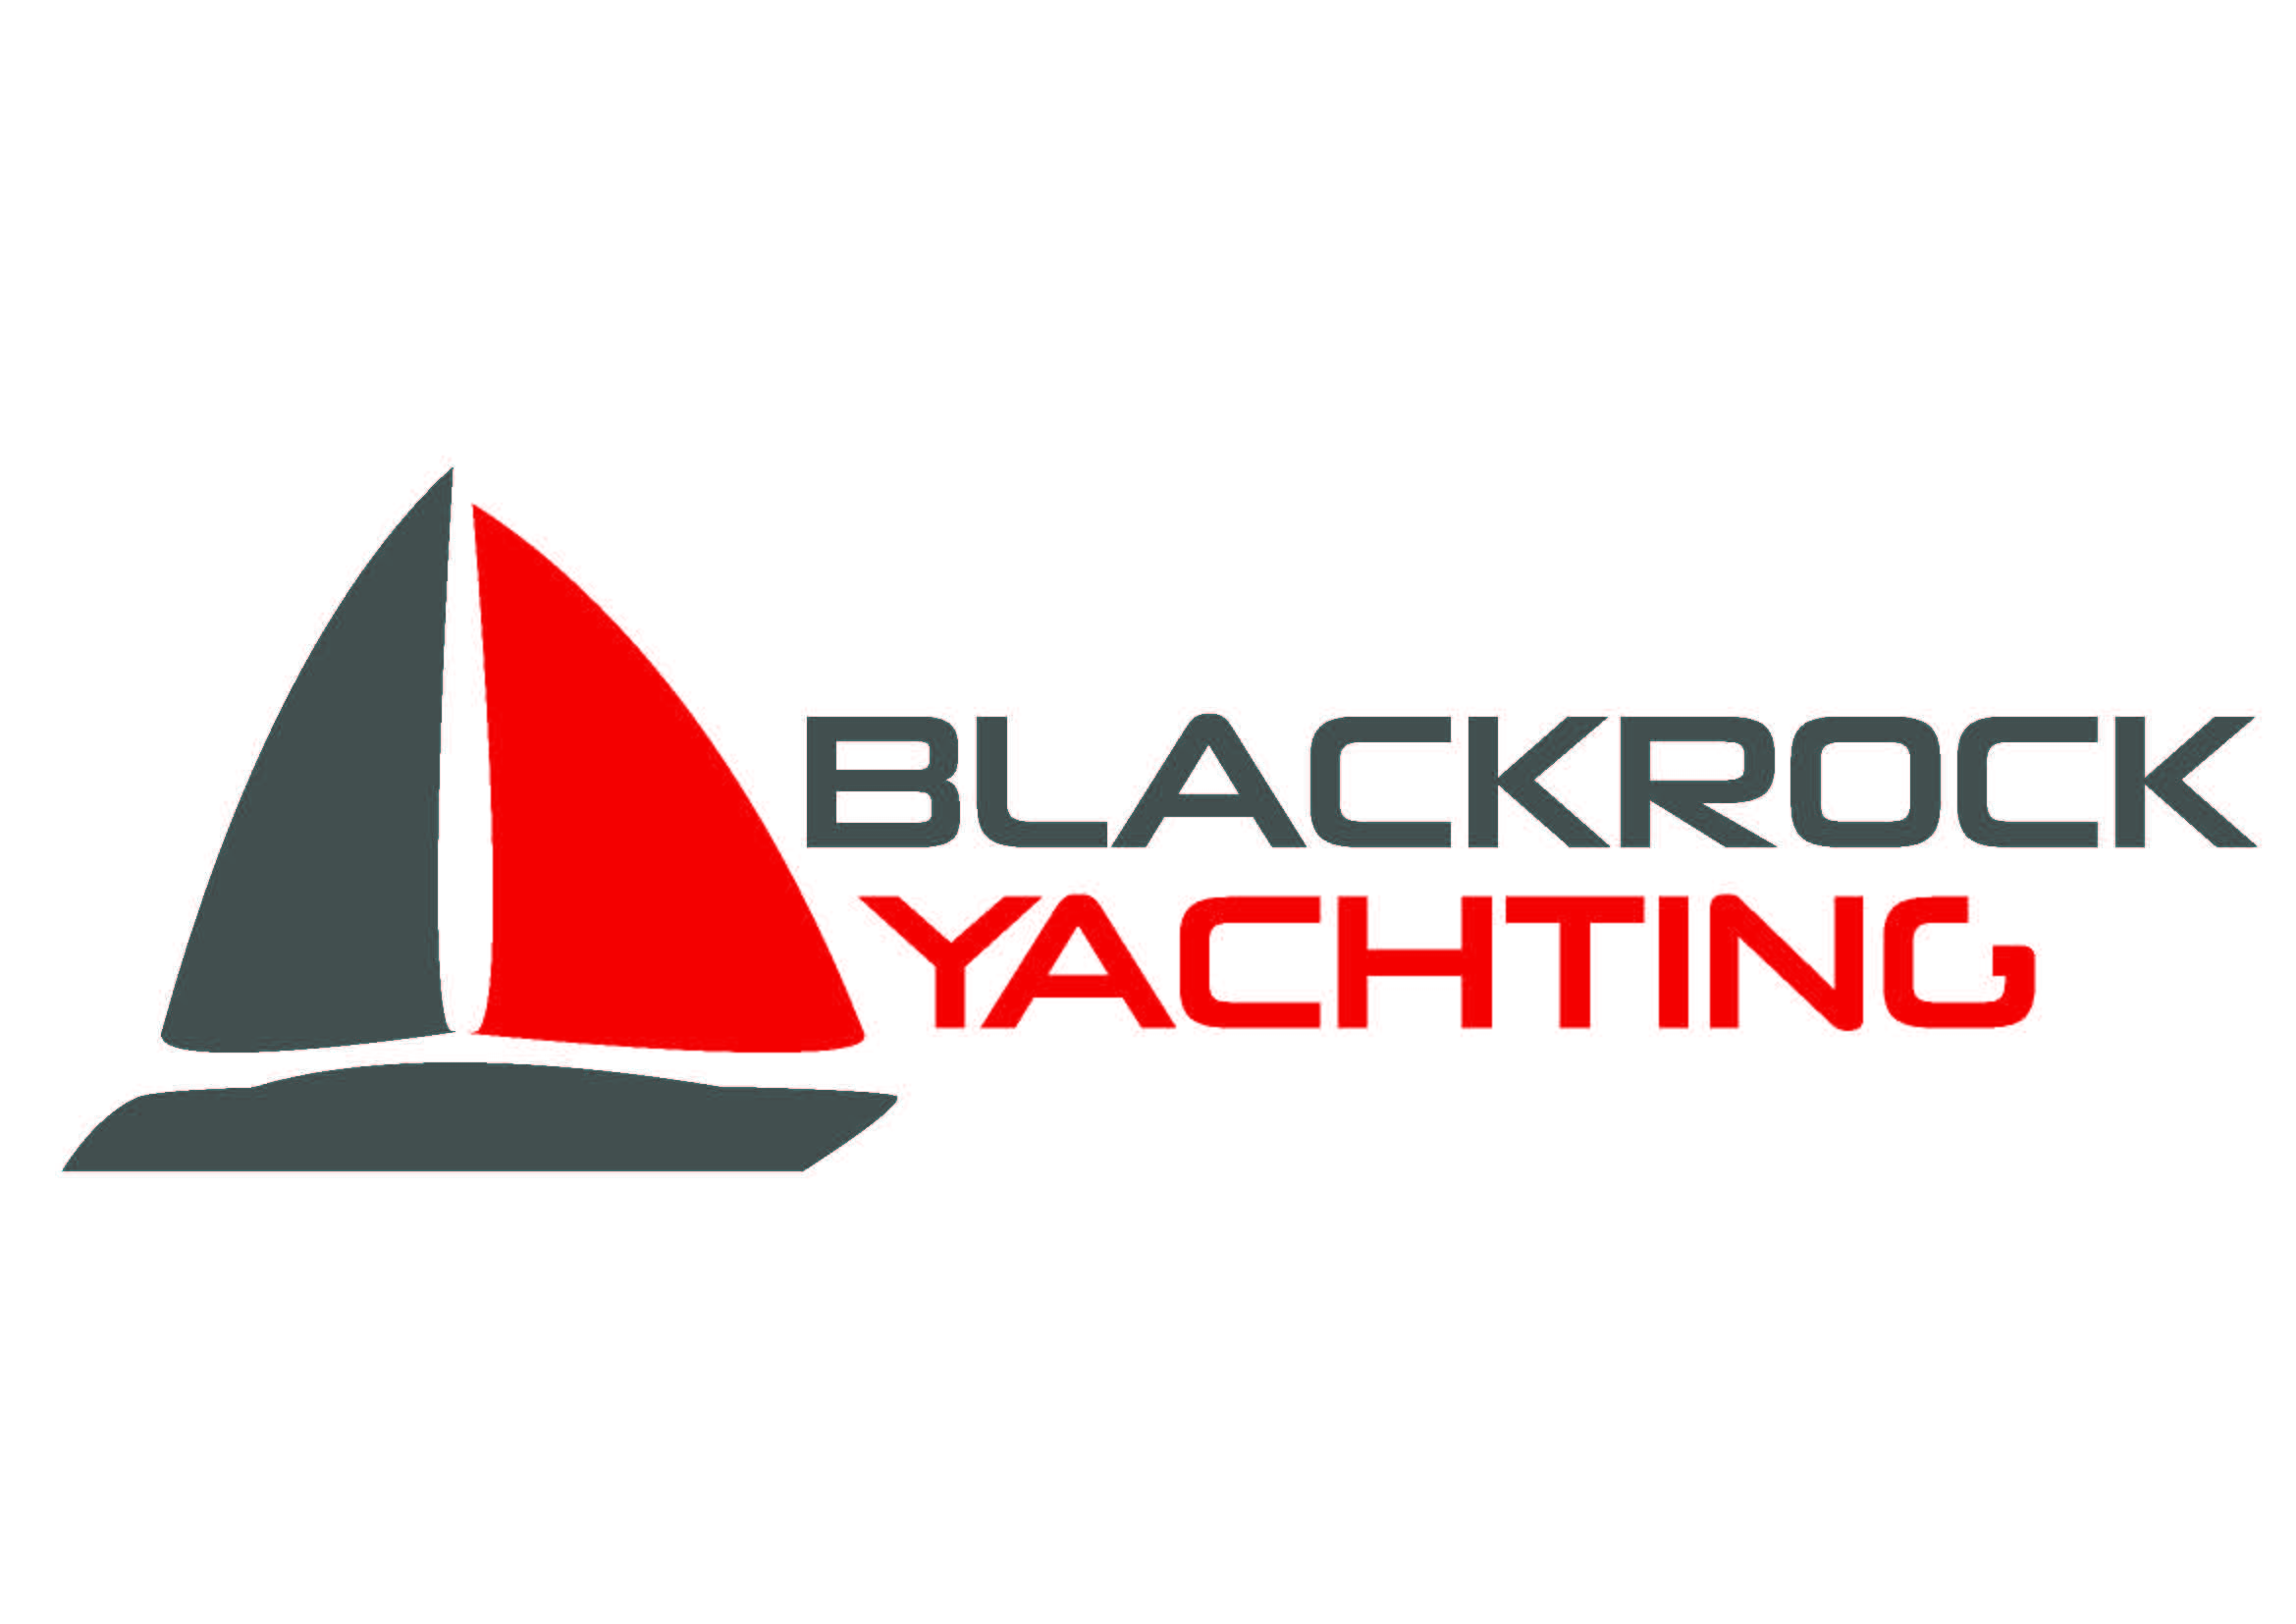 BLACKROCK YACHTING Ltd